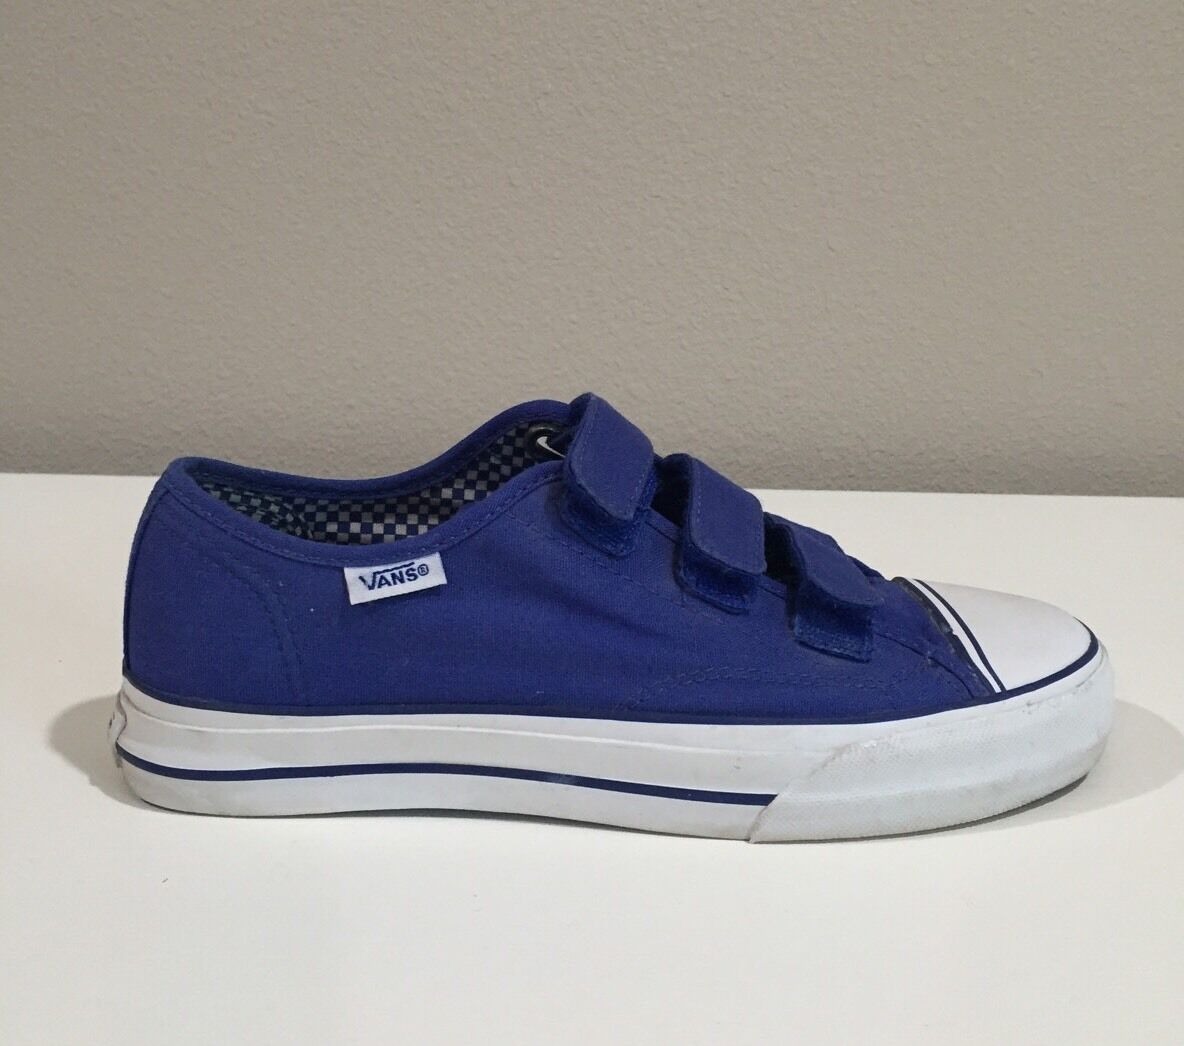 Vans Women's Prison Issue Blue Canvas Shoe Size 7.5 *Rare*